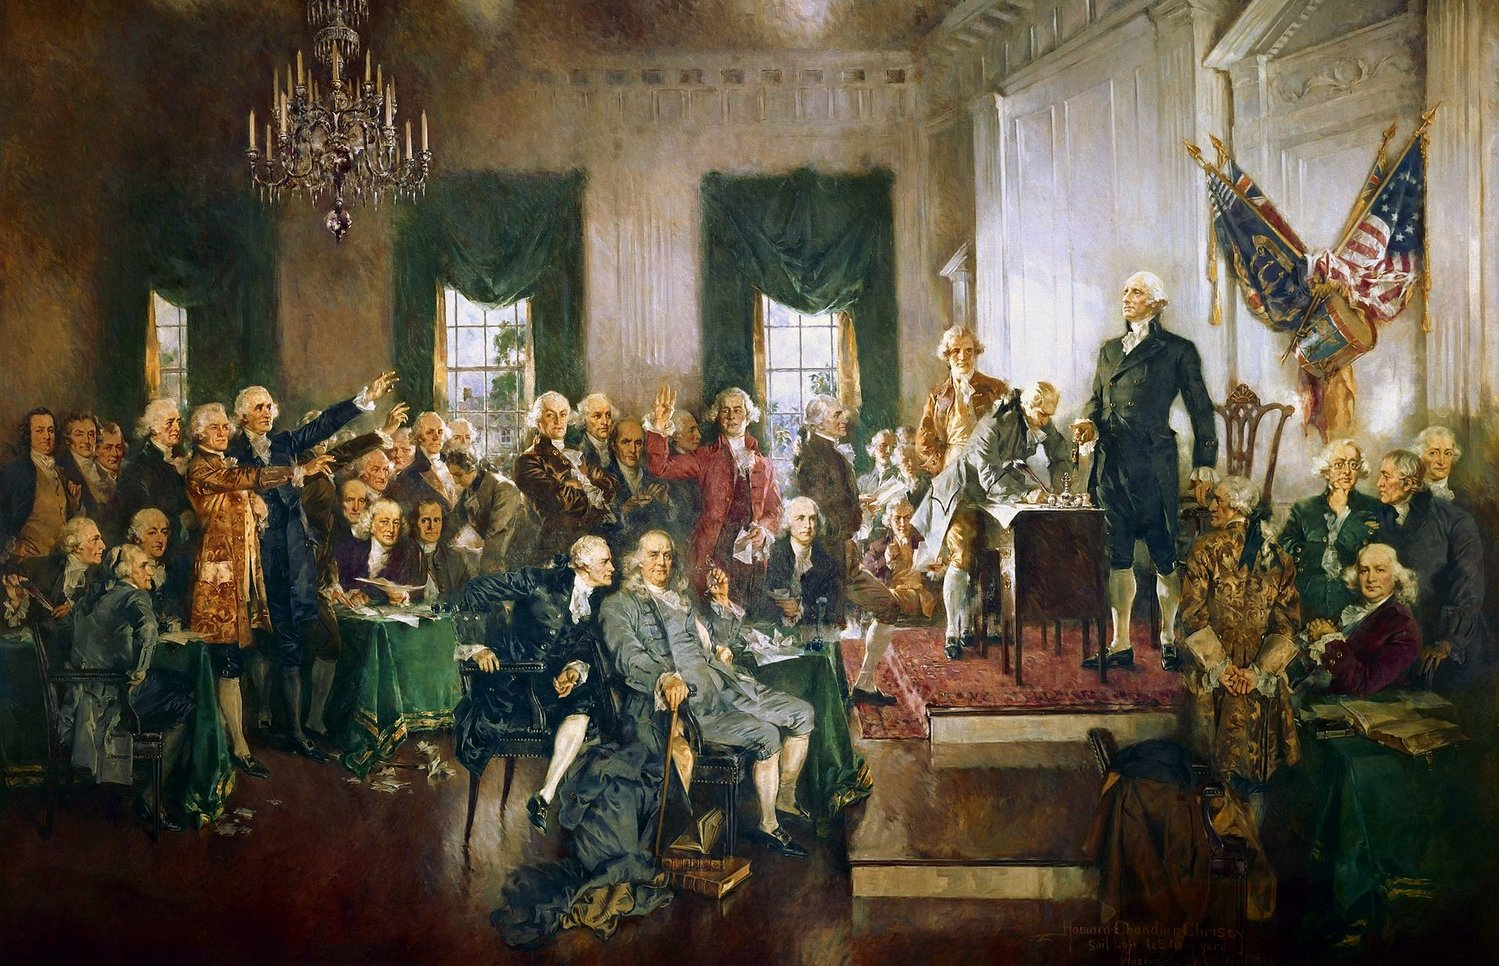 Scene at the signing of the Constitution of the United States.